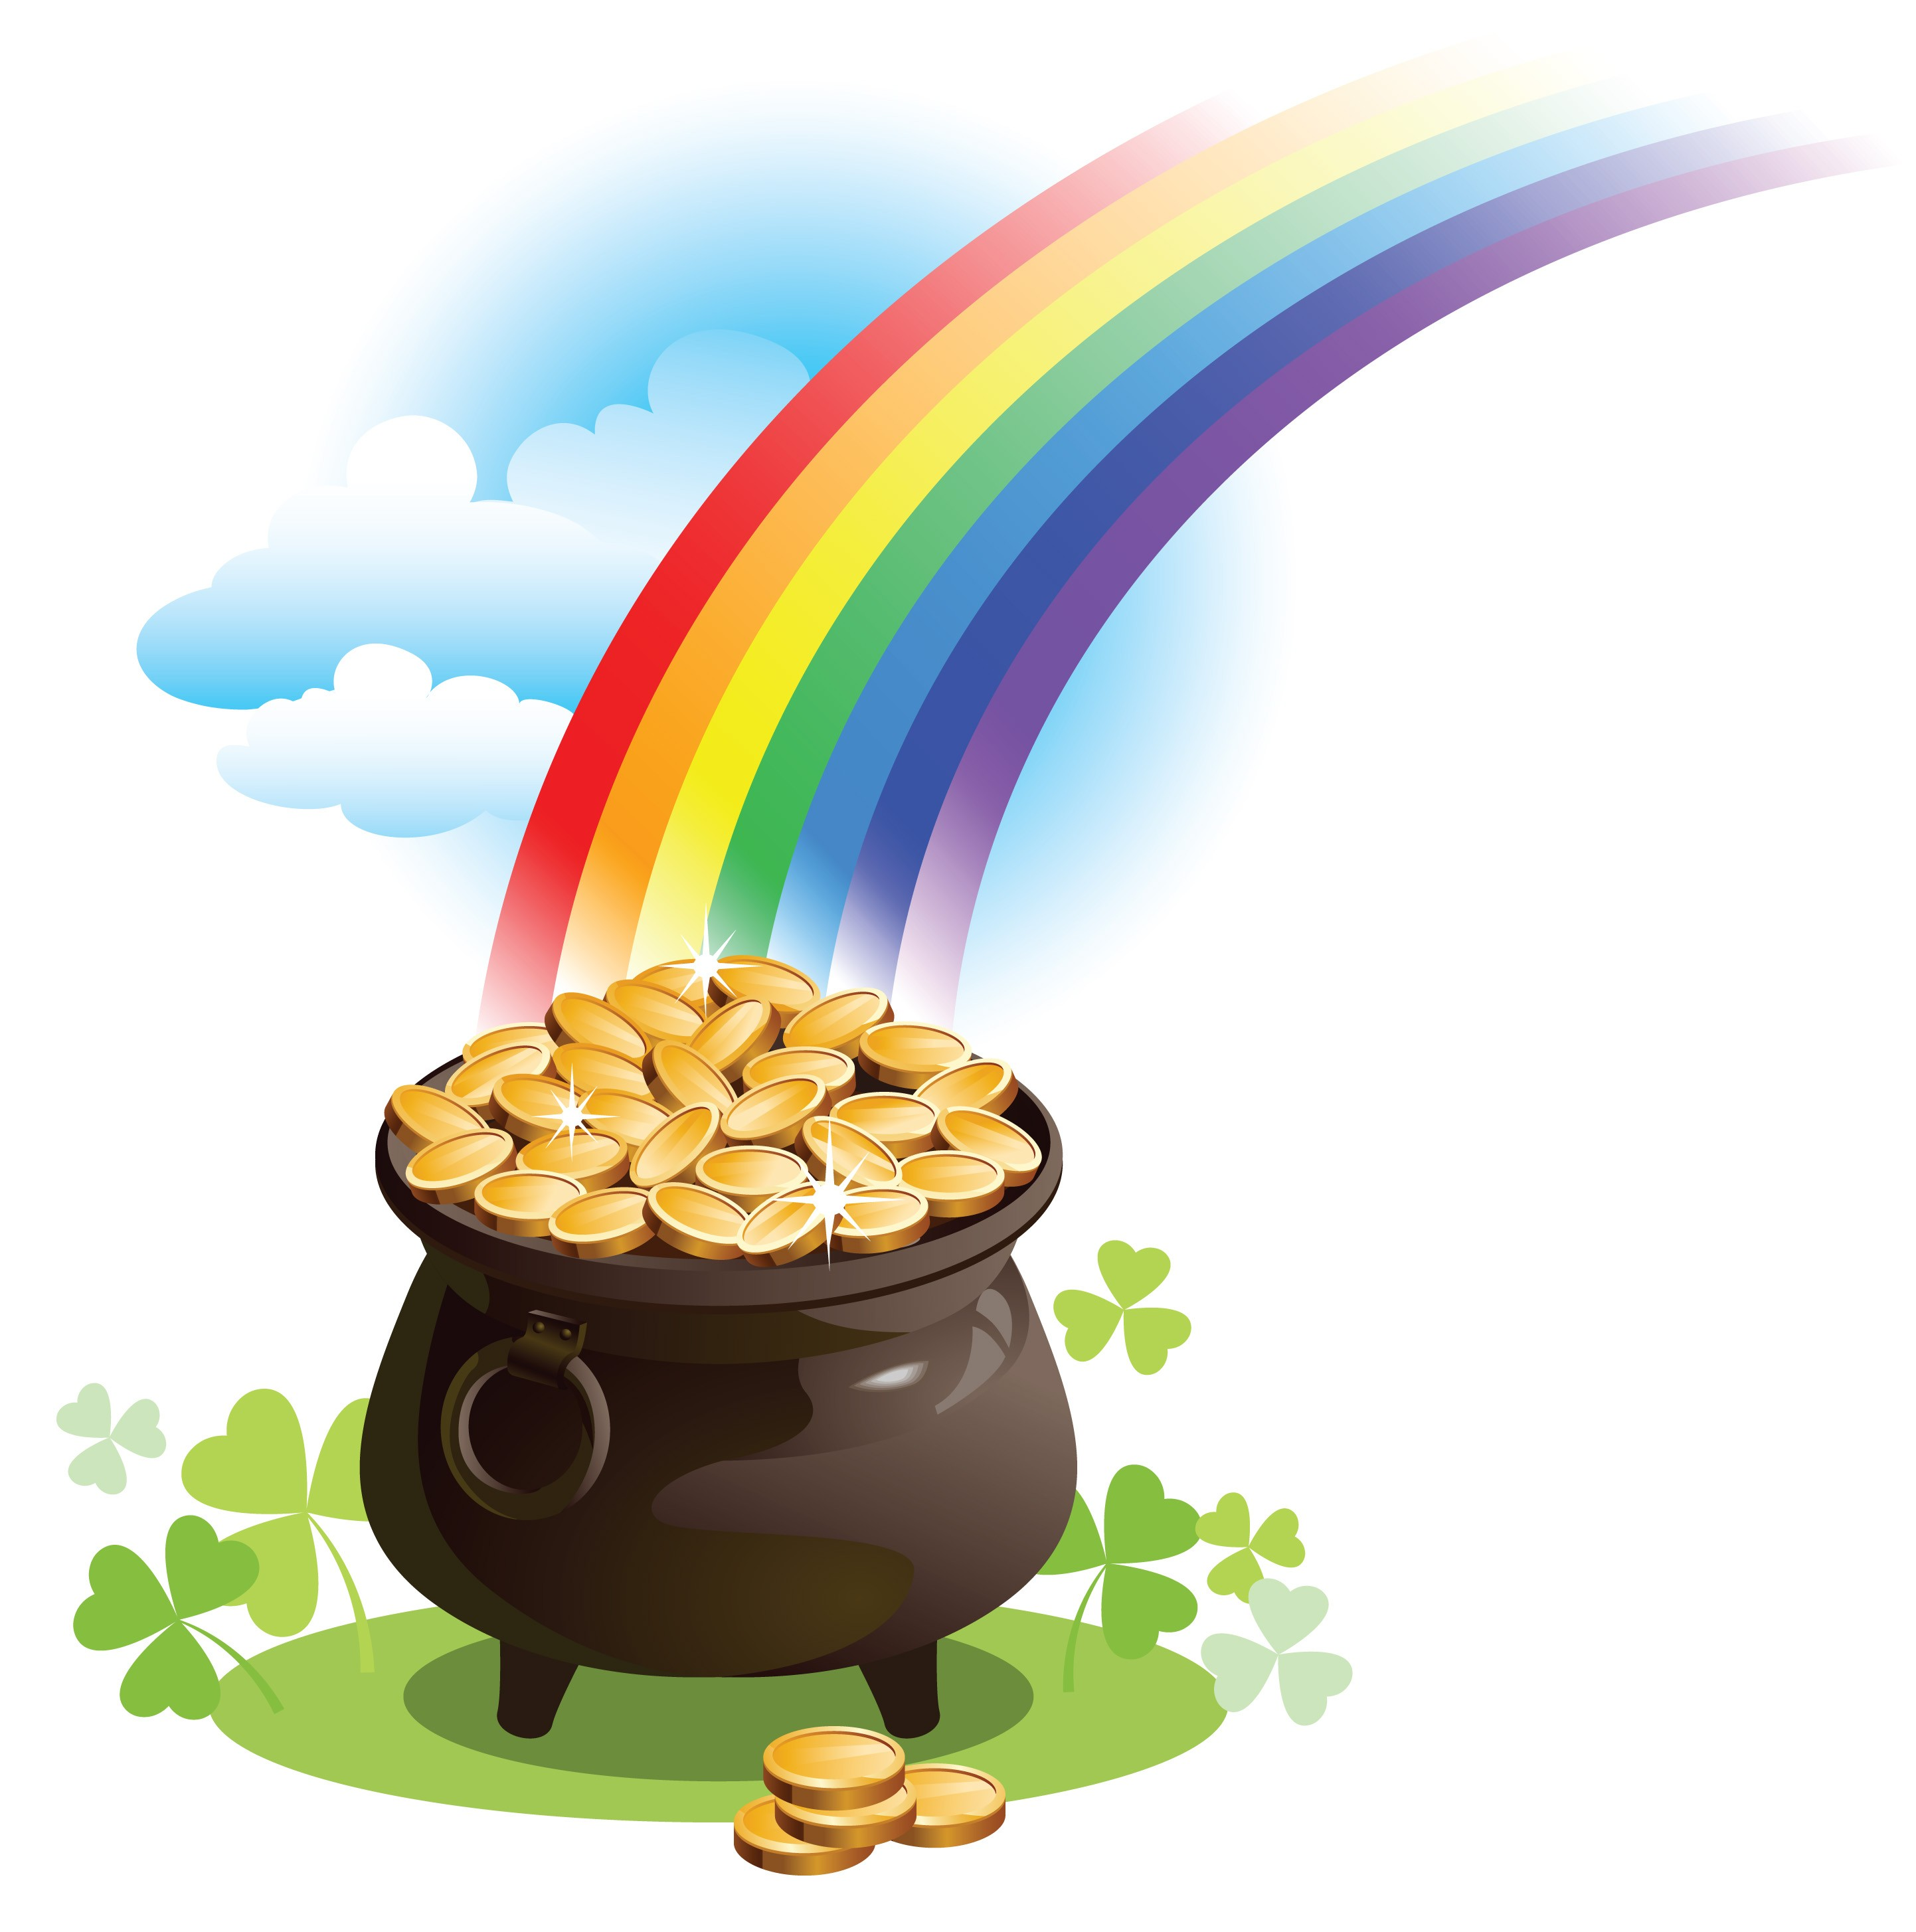 St-Patricks-Day-Pot-of-Gold-Images